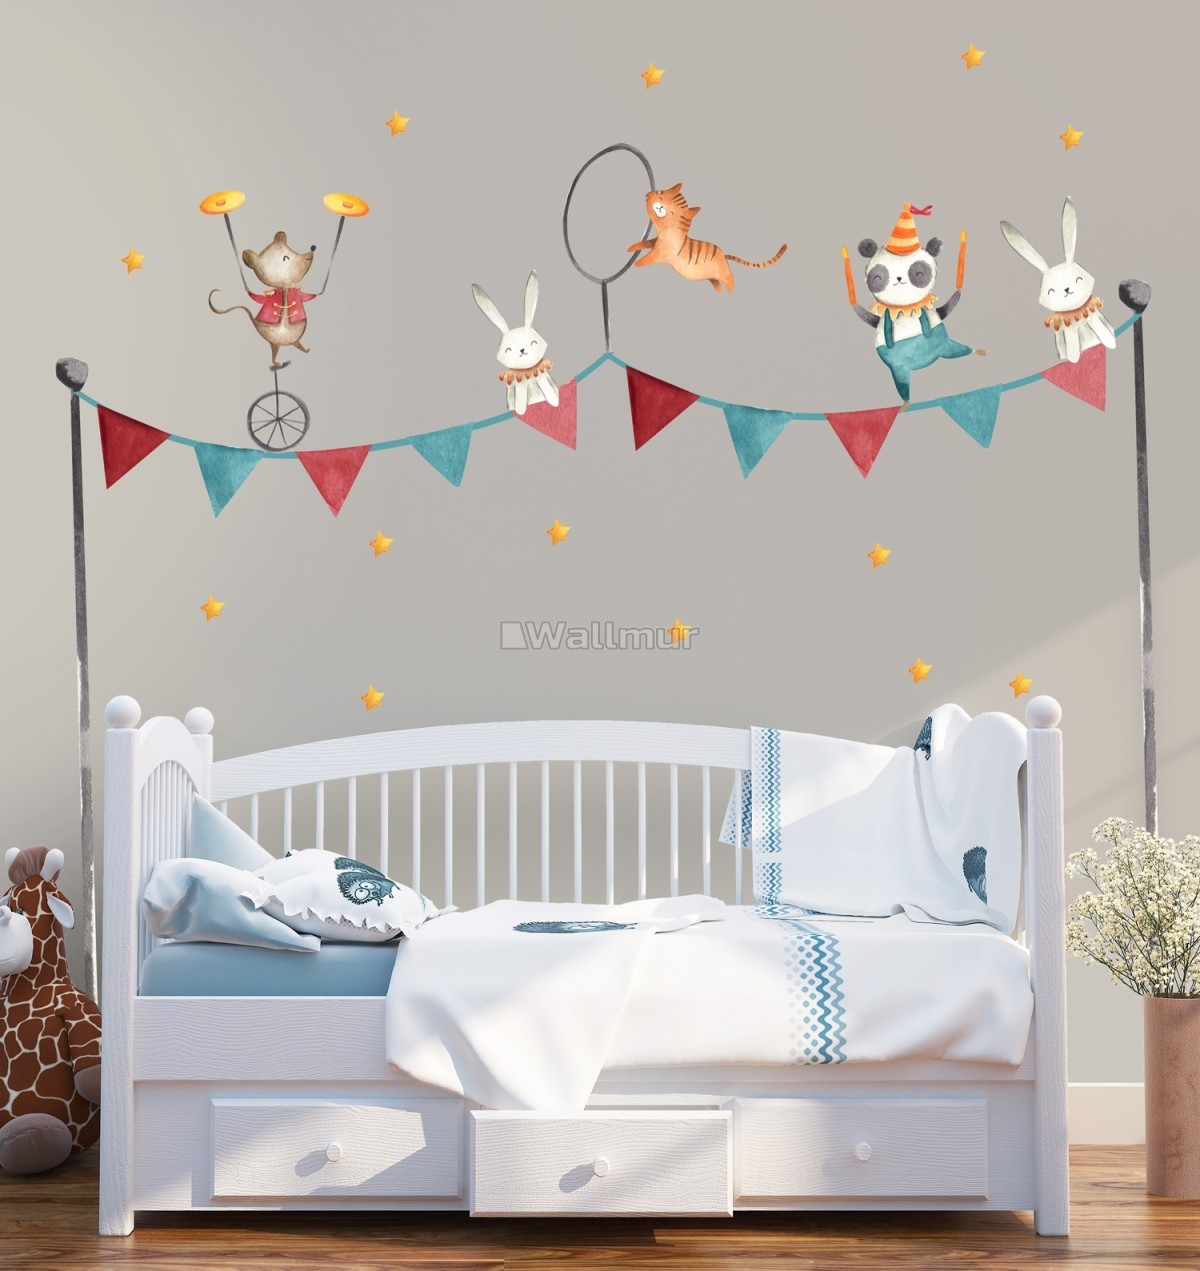 Kids Circus Safari Animals Wall Decal Sticker